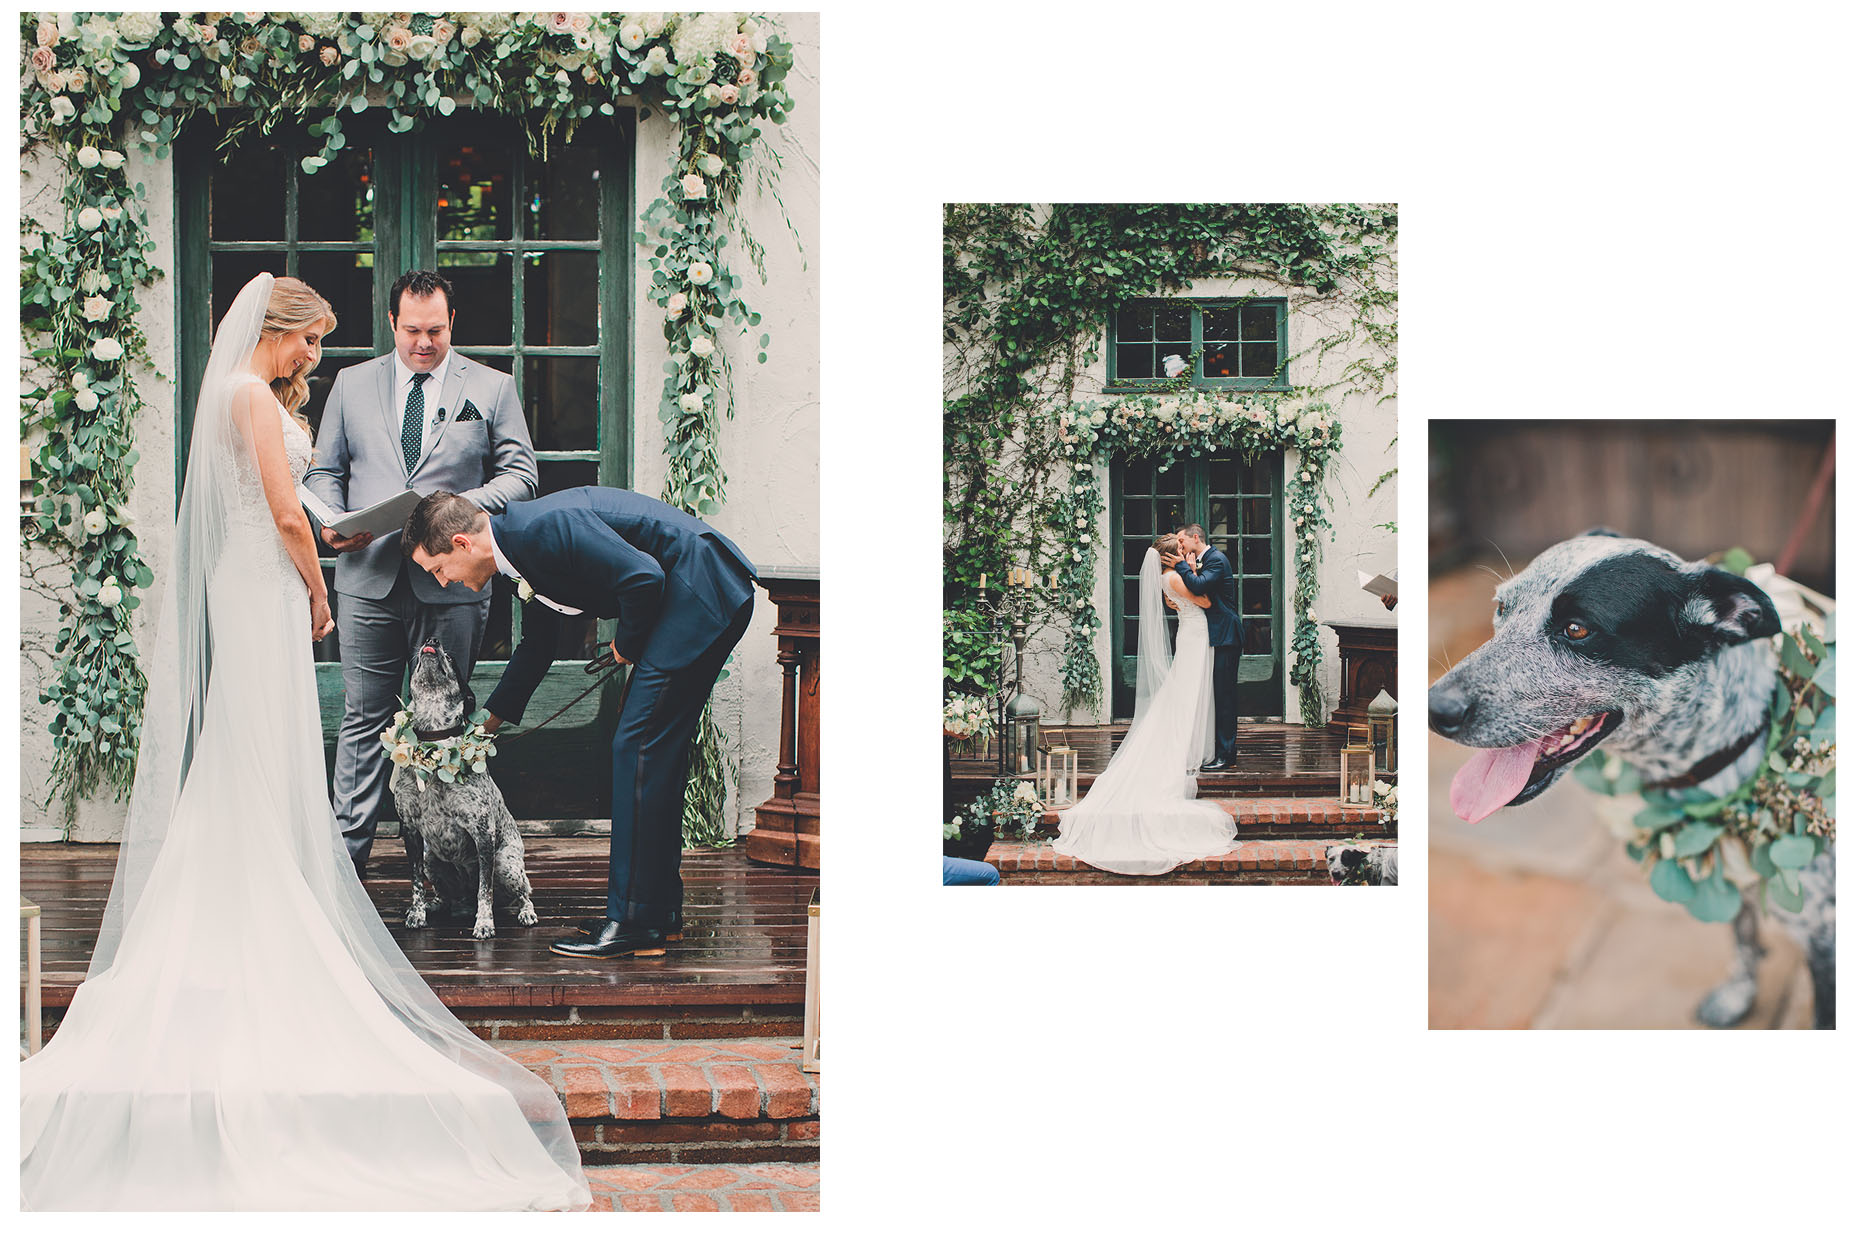 weddingphotographerforthevillasanjuancapistranocreativetopratedrusticmodernweddingphotog